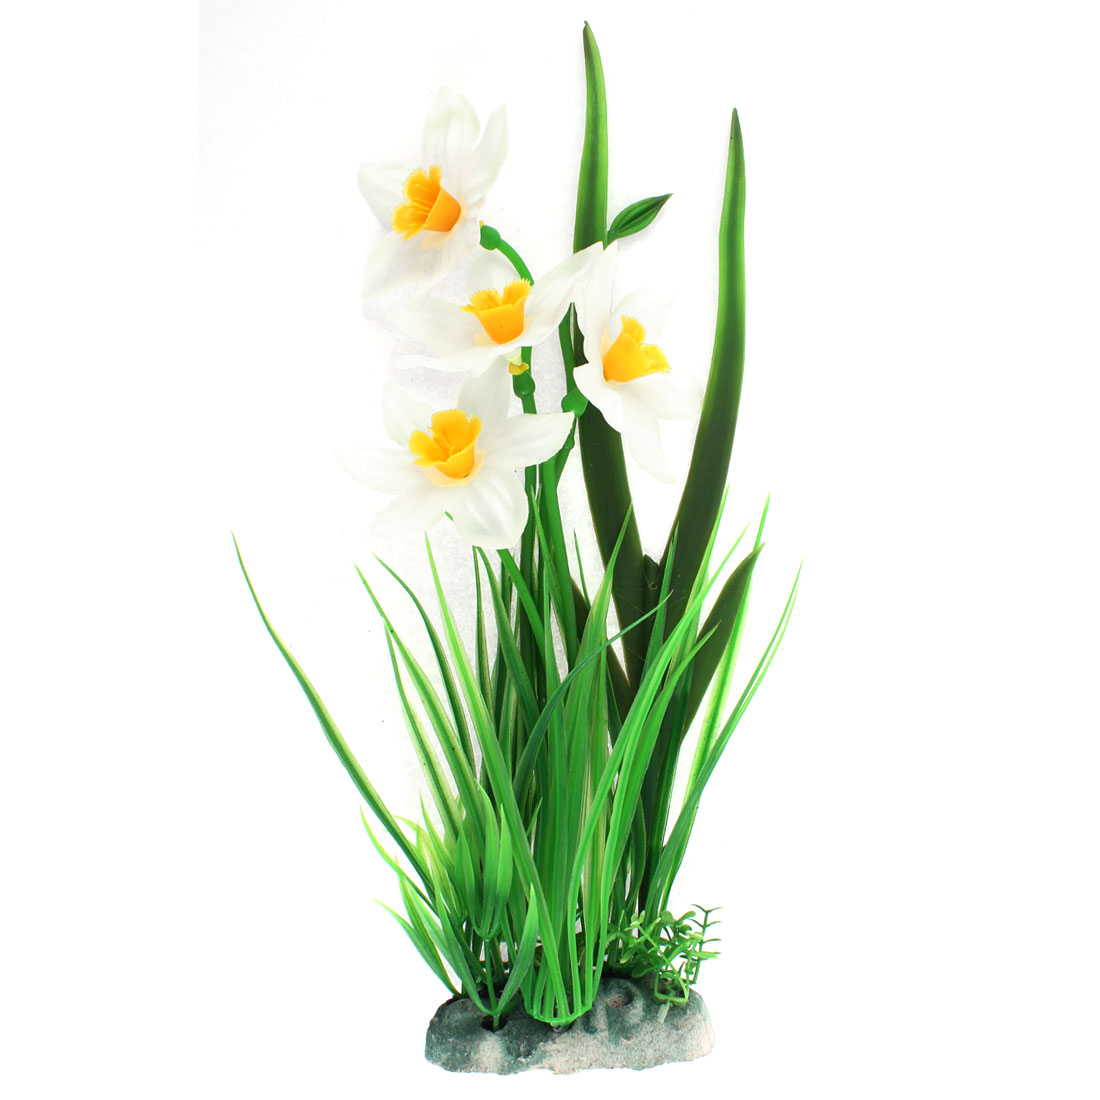 Aquarium Fishbowl Plastic Simulation Underwater Flower Grass Plant Green White